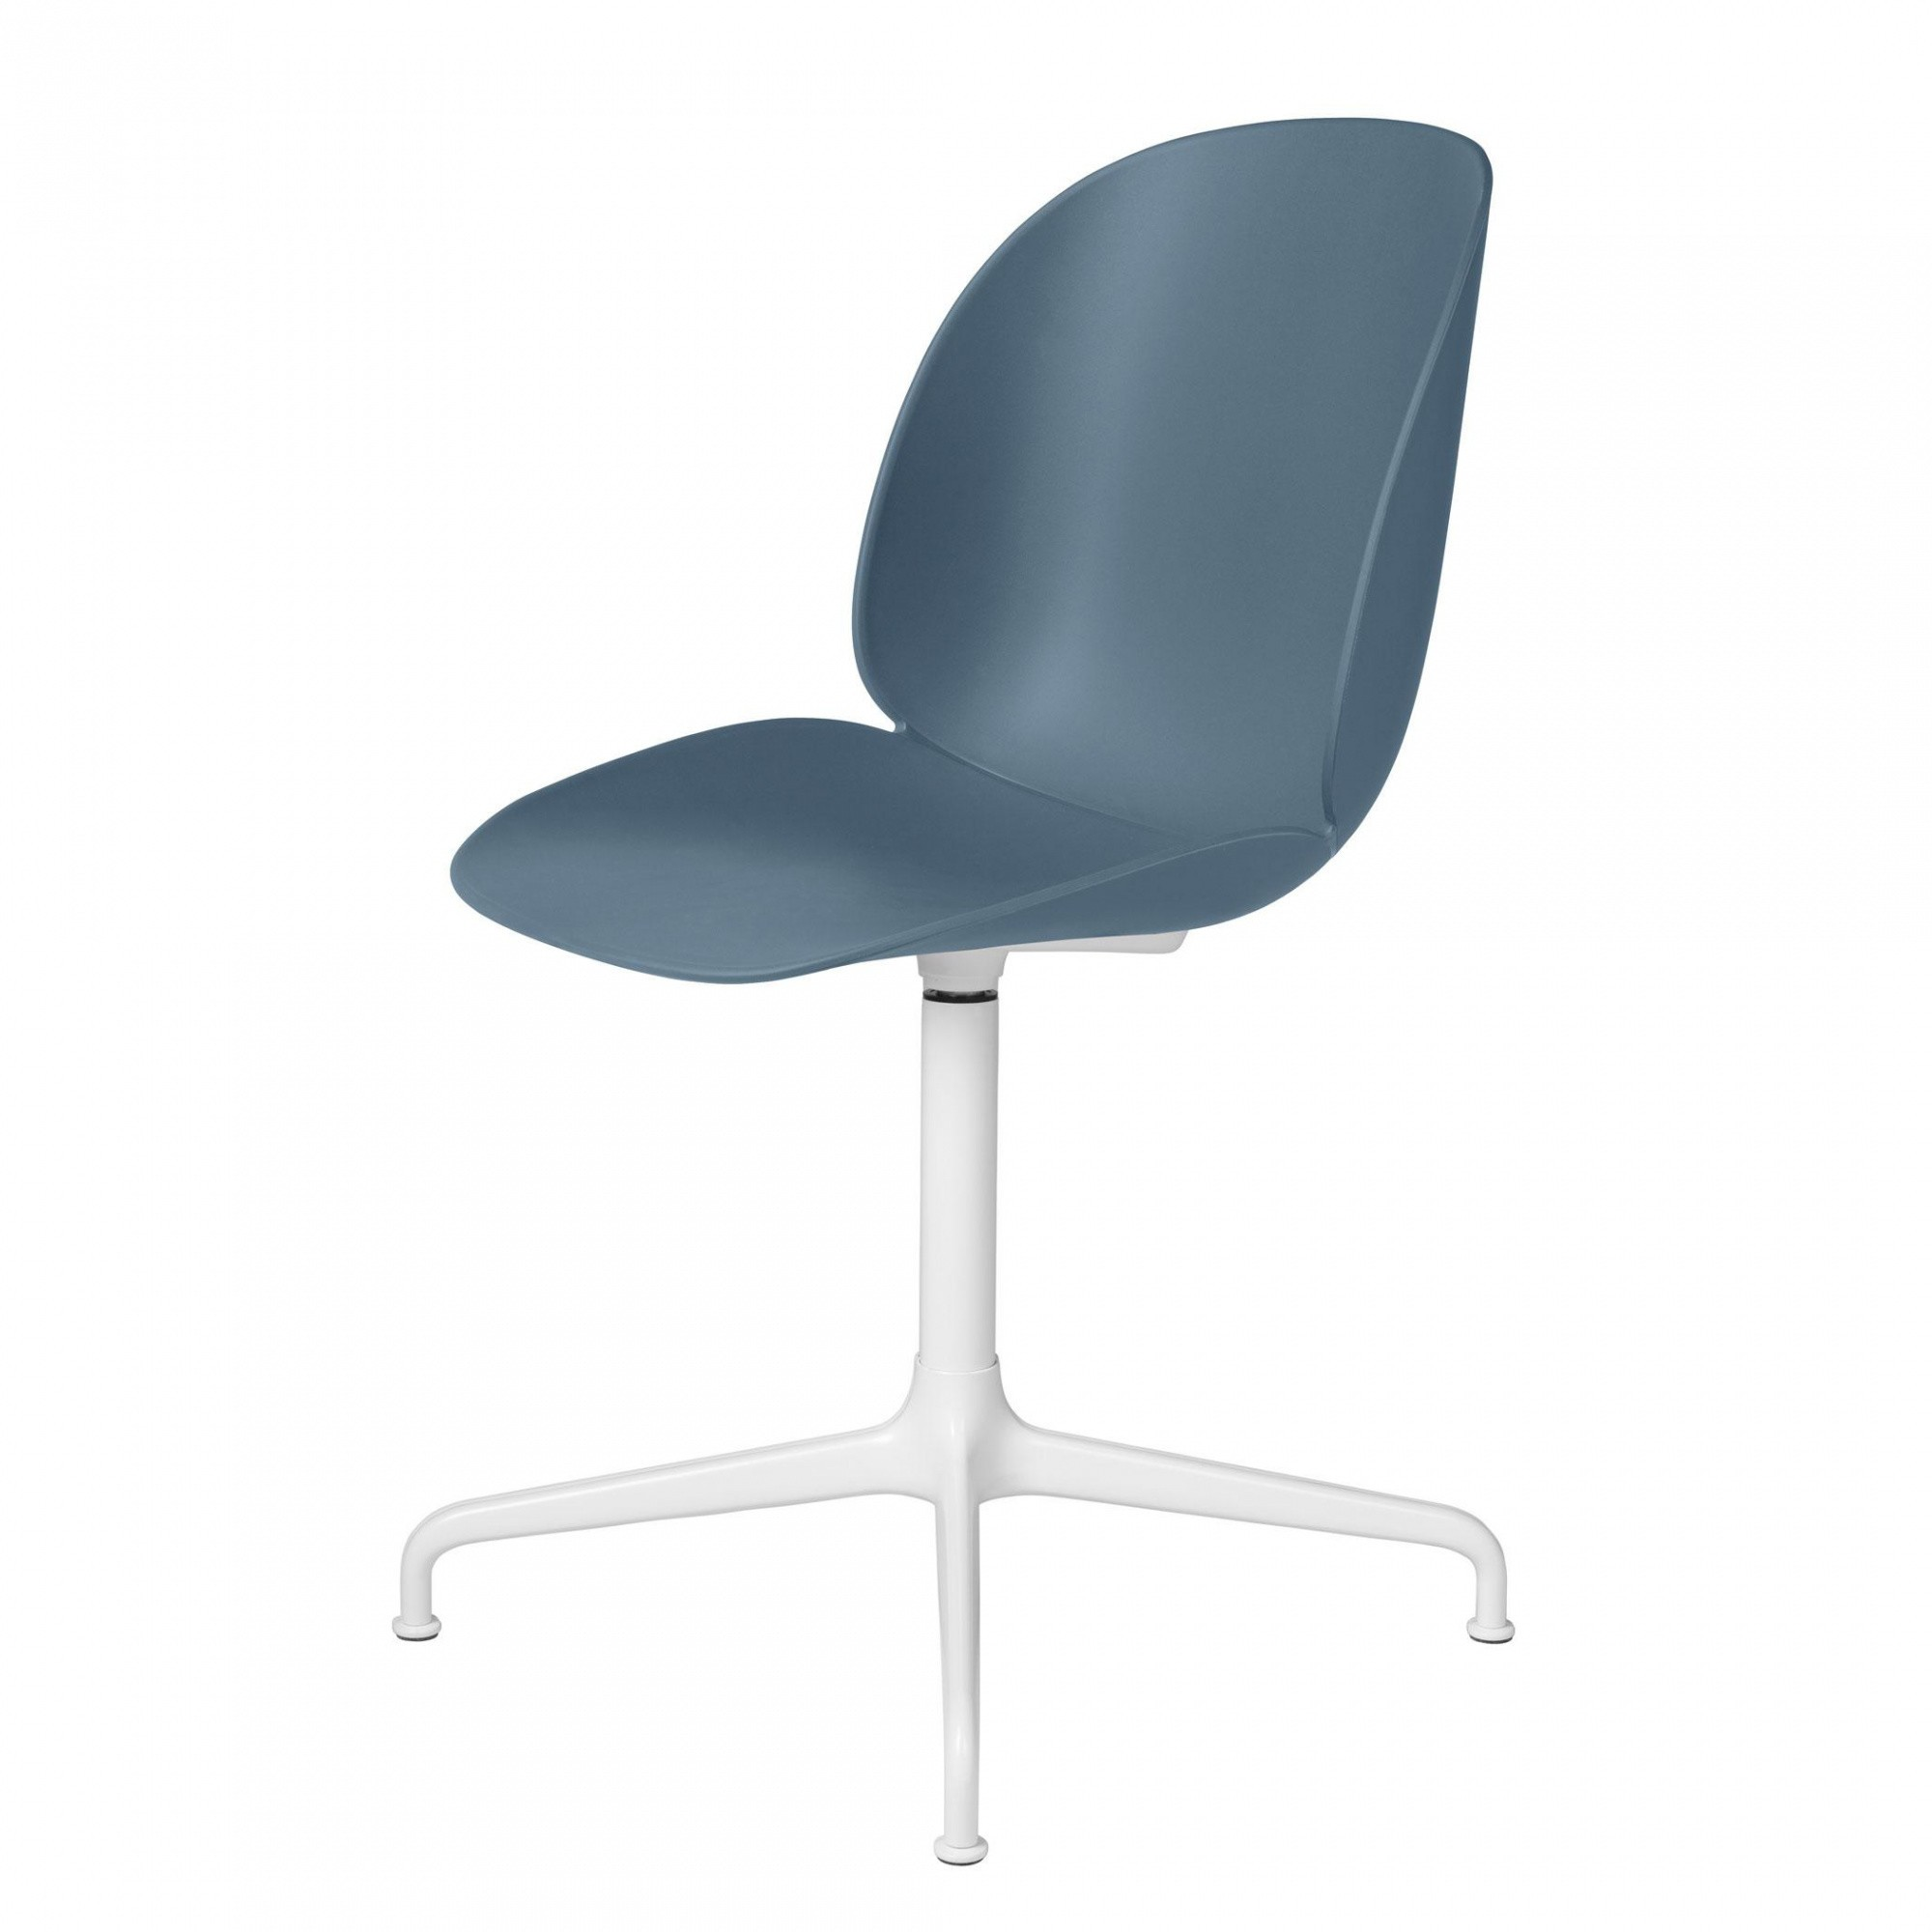 Gubi   Beetle Dining Chair With White Cross Swivel Base   Blue Grey/seat  Polypropylene